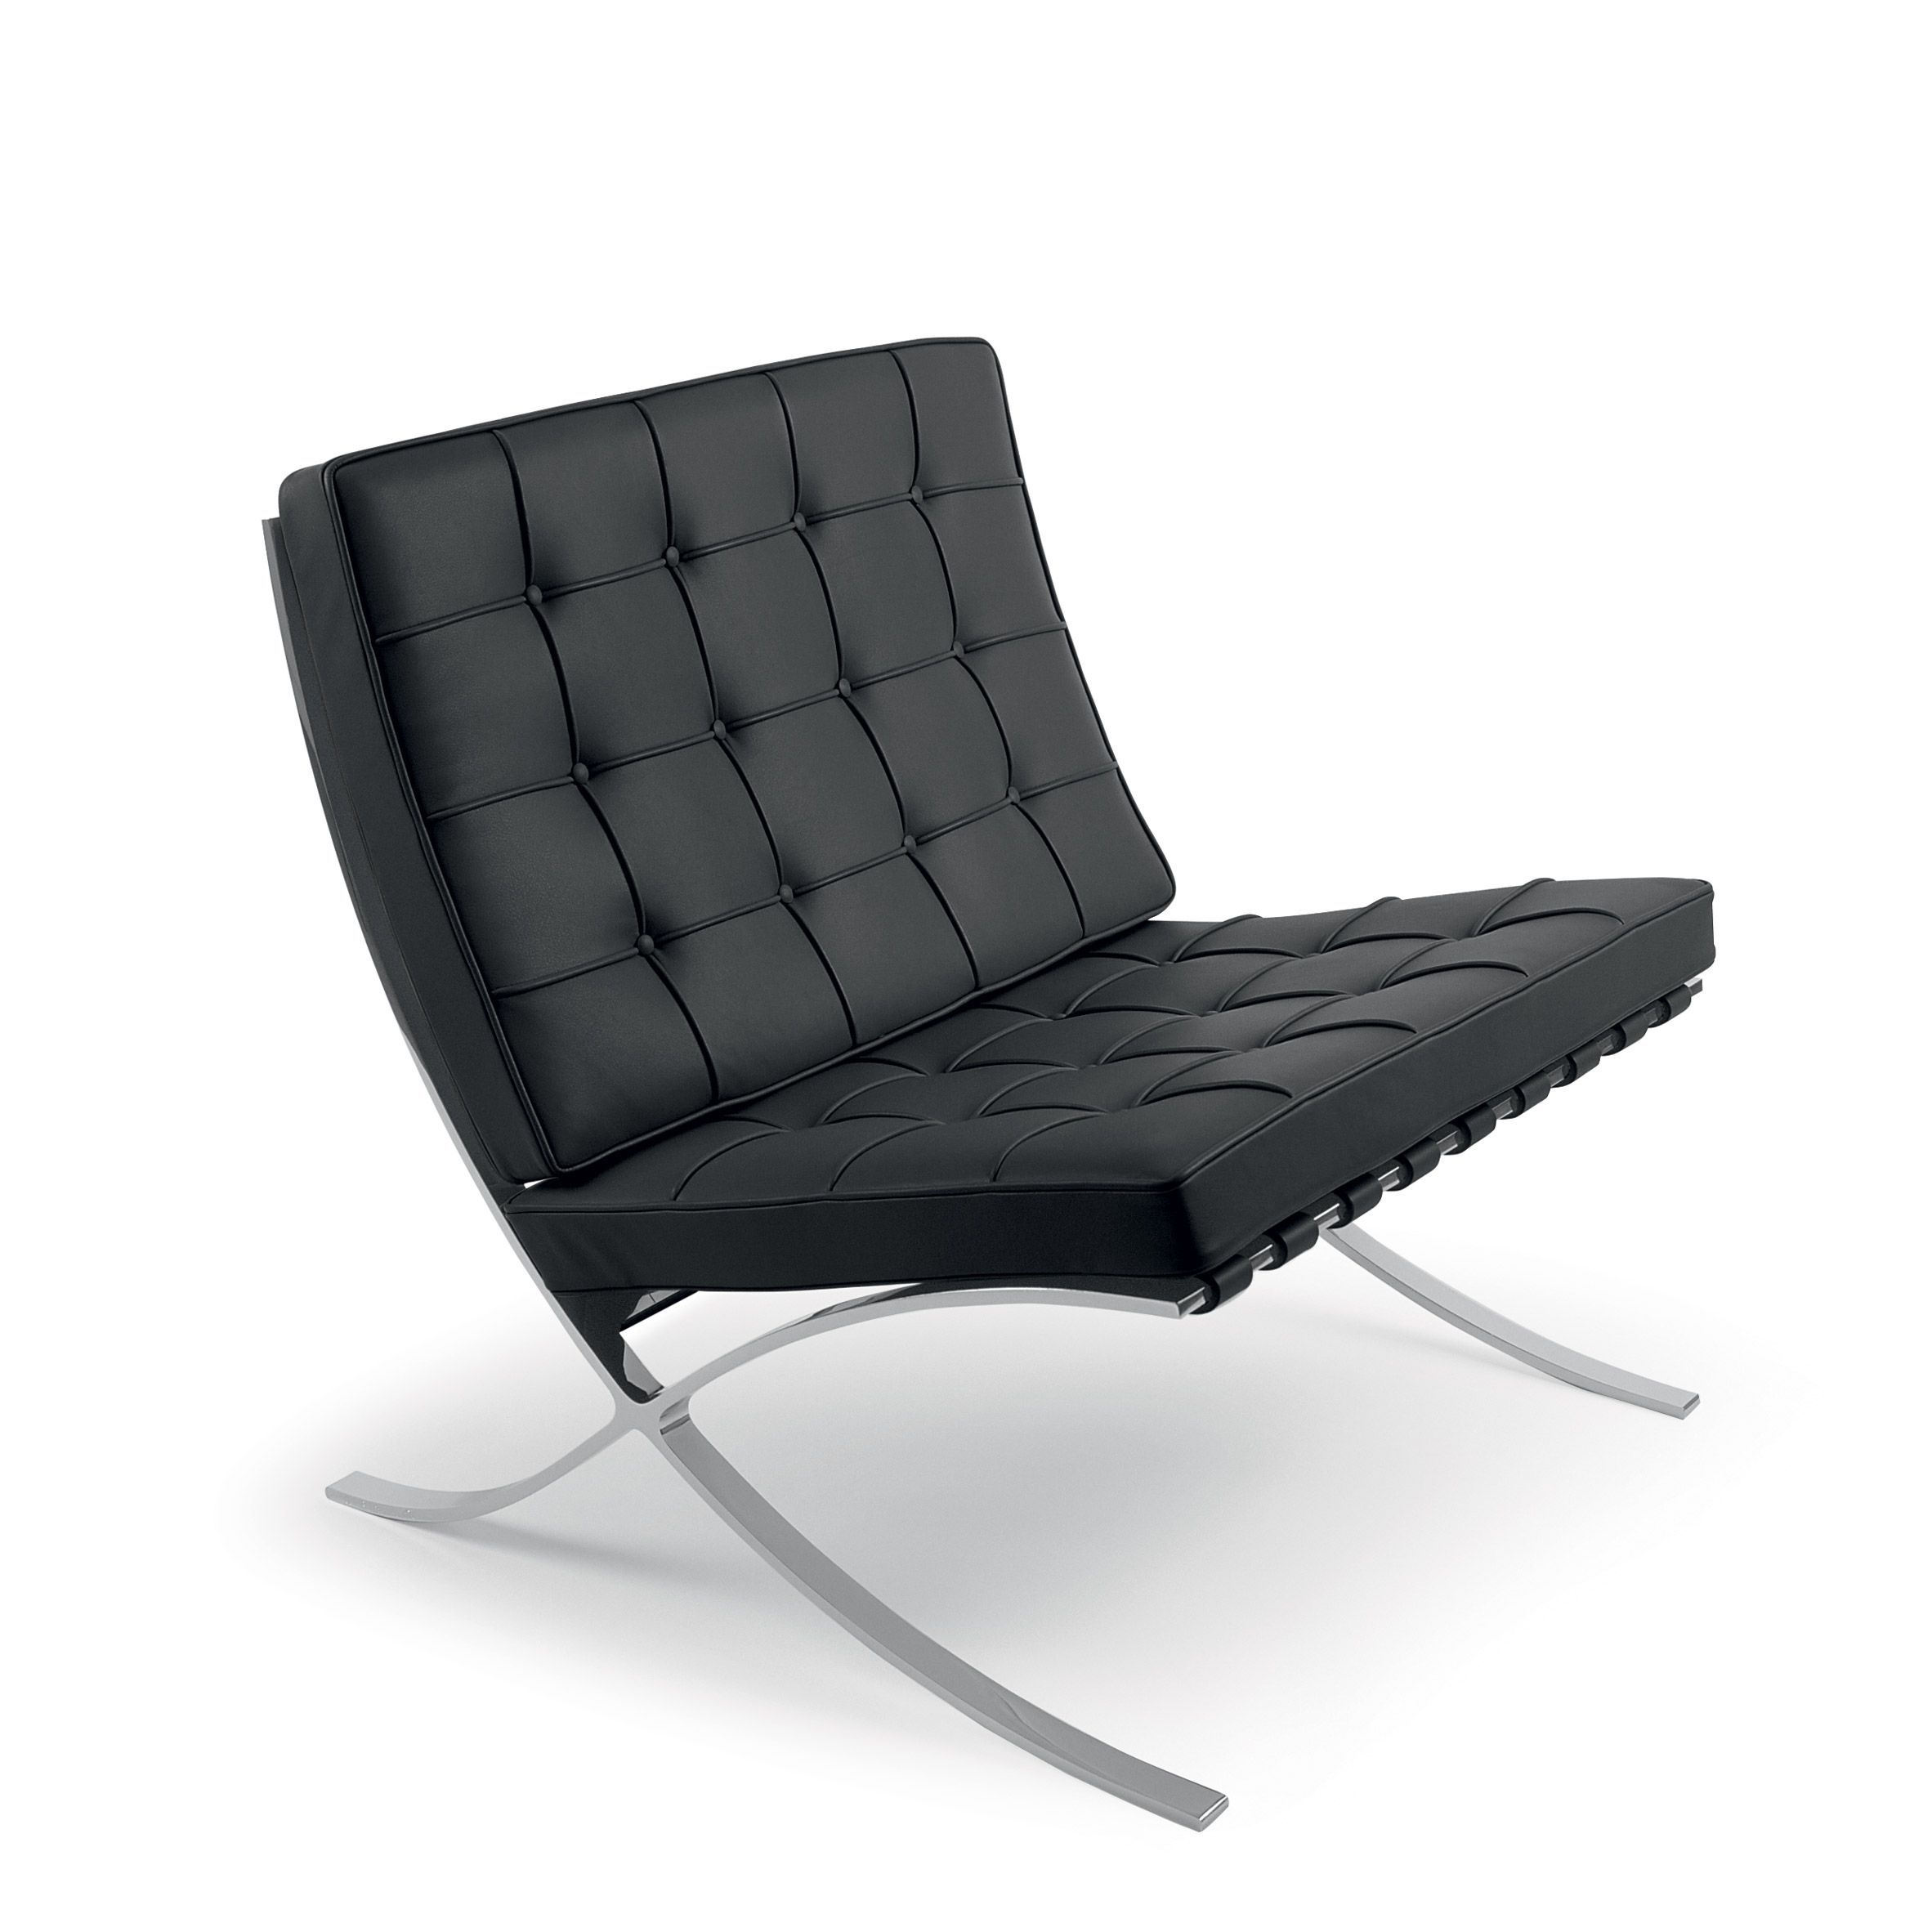 Barcelona Chair by Mies van der Rohe and Lilly Reich. 10